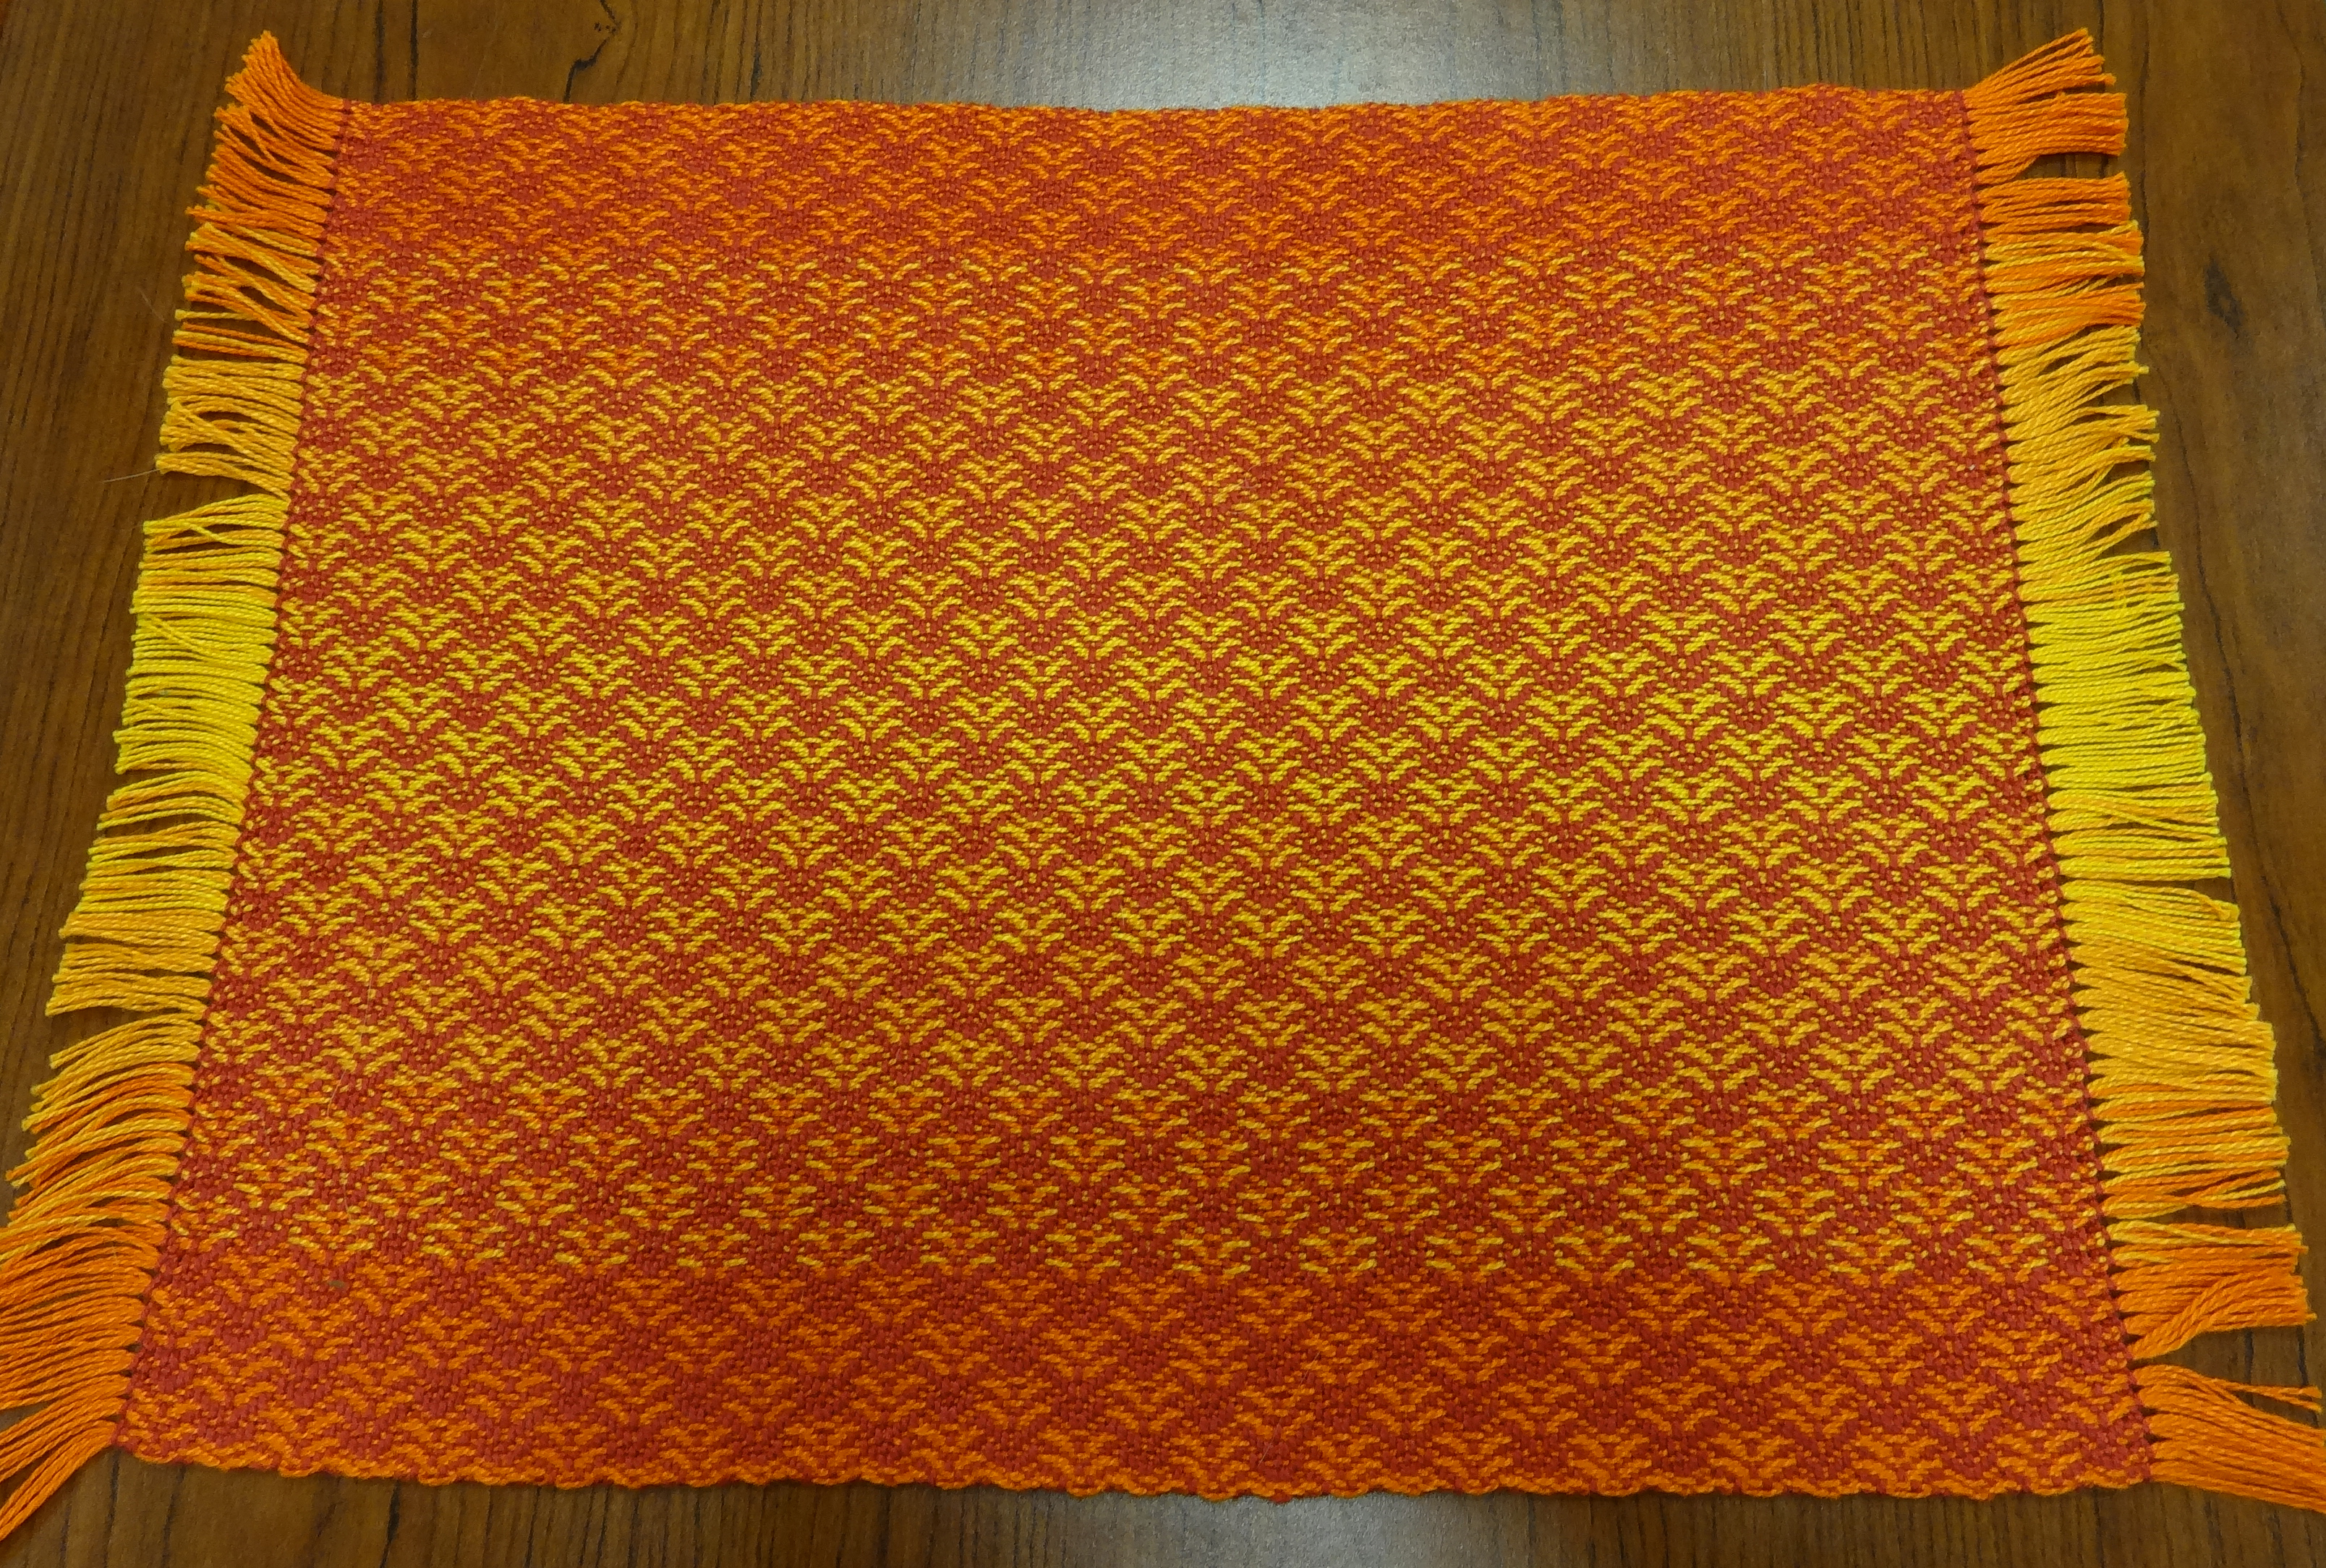 Placemat by Kate Lieber